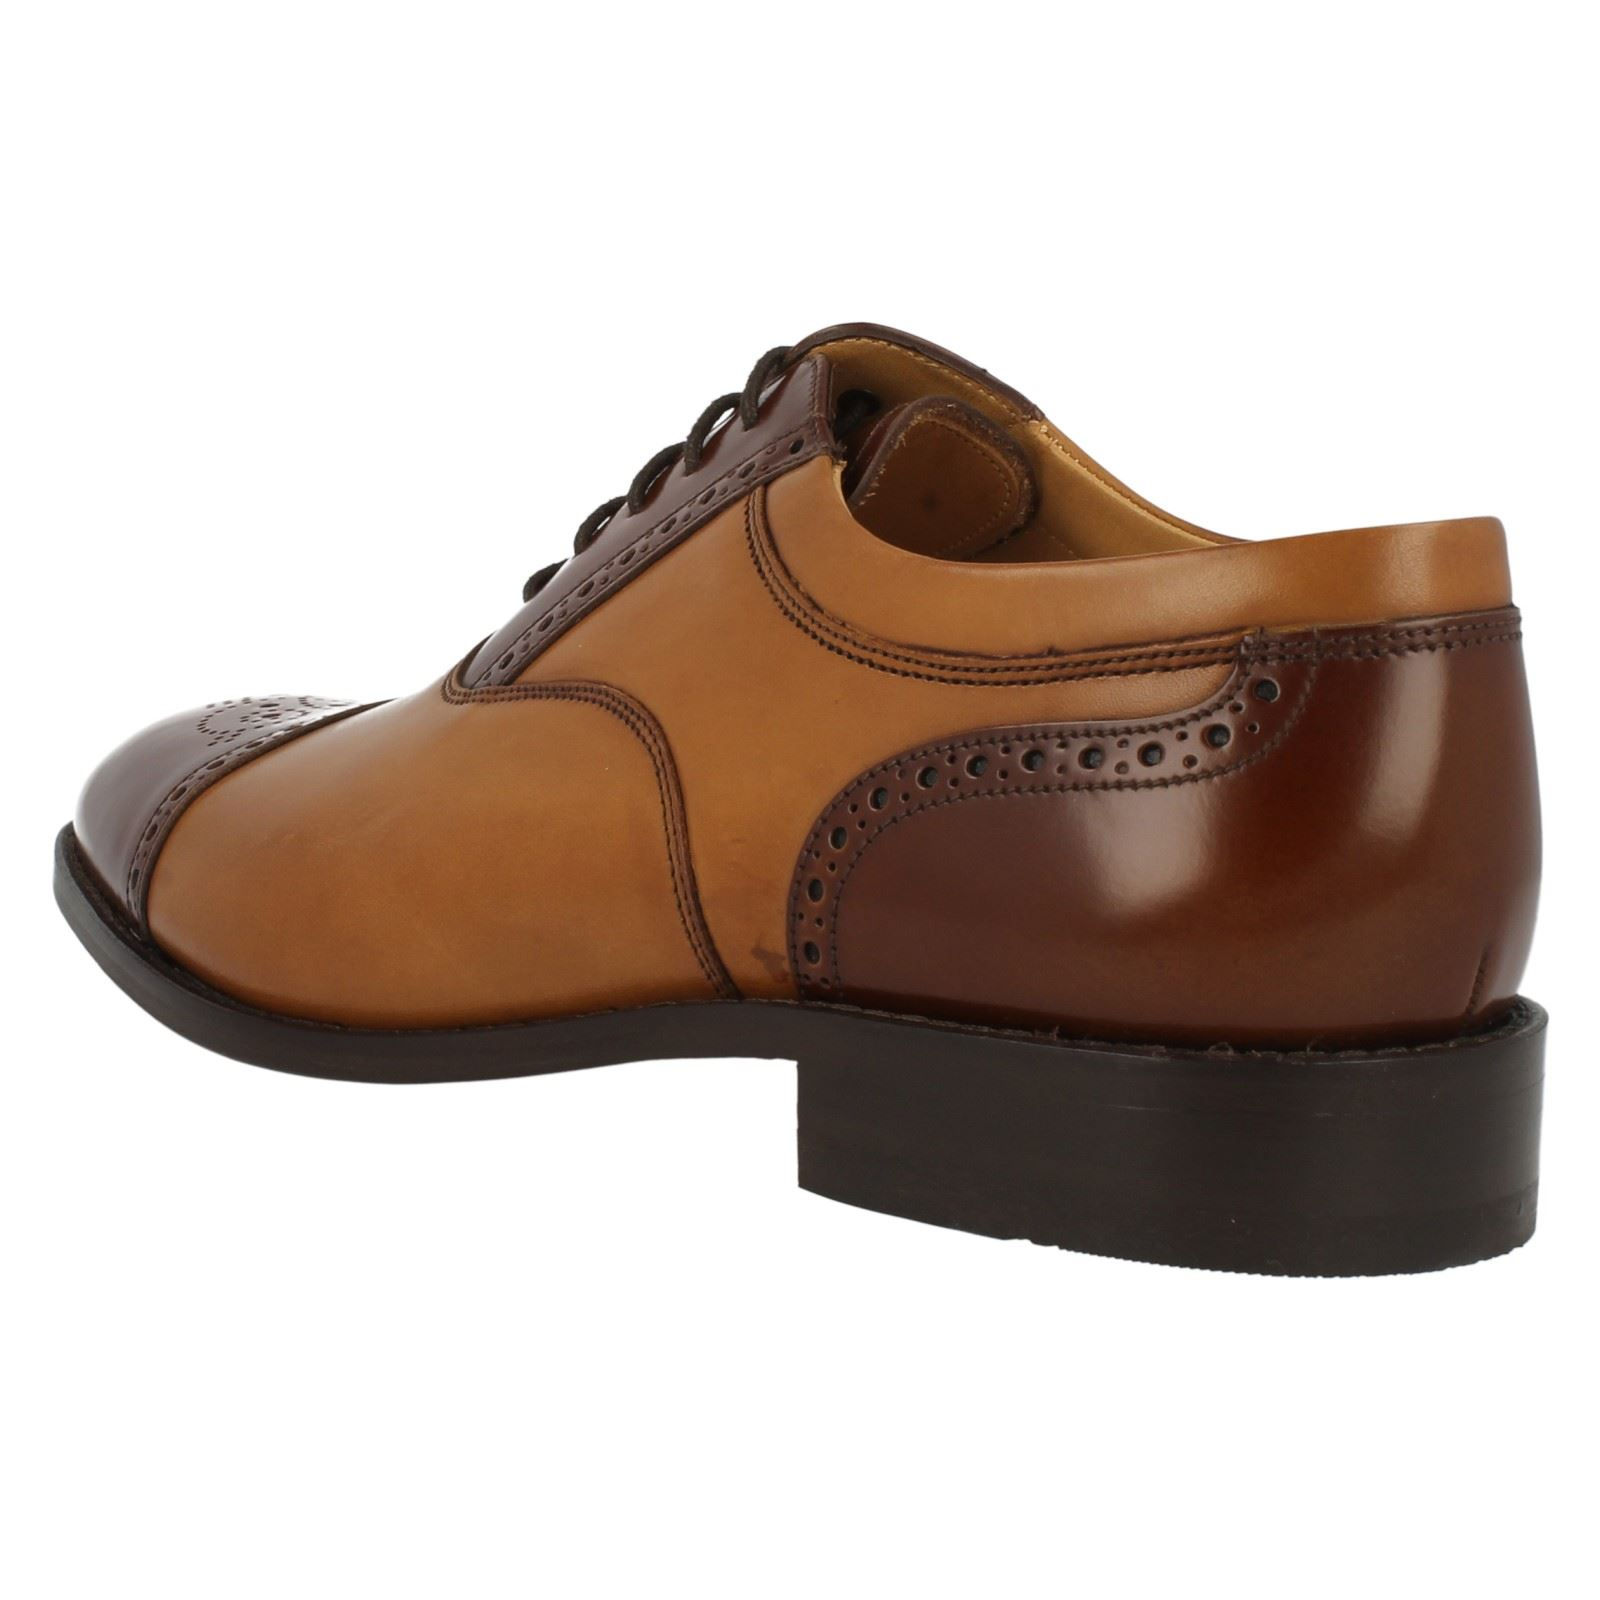 Mens Loake Loake Loake Smart Leather Lace Up Shoes Woodstock c655fb